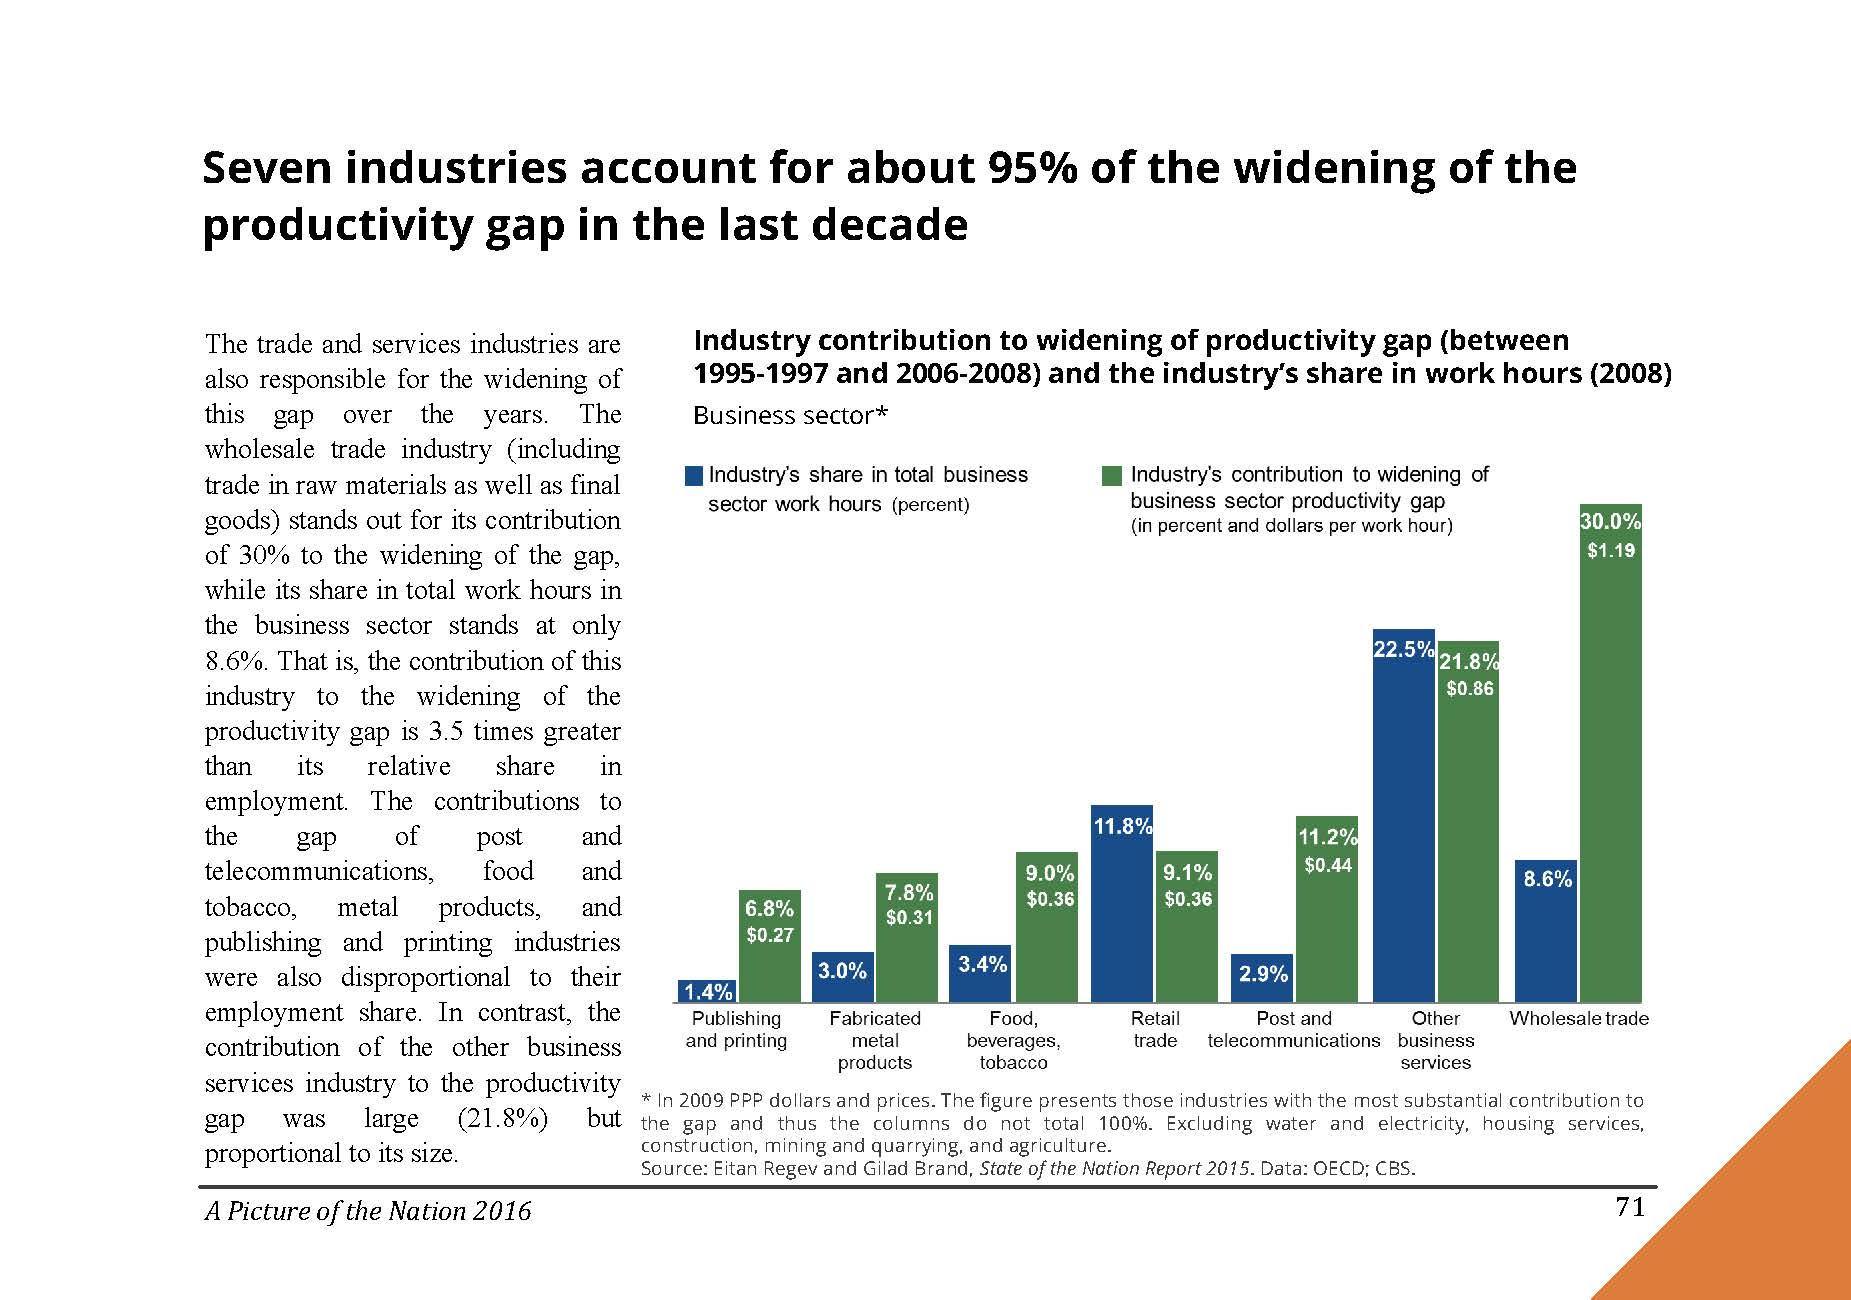 Seven industries account for about 95% of the widening of the productivity gap in the last decade between Israel and the OECD